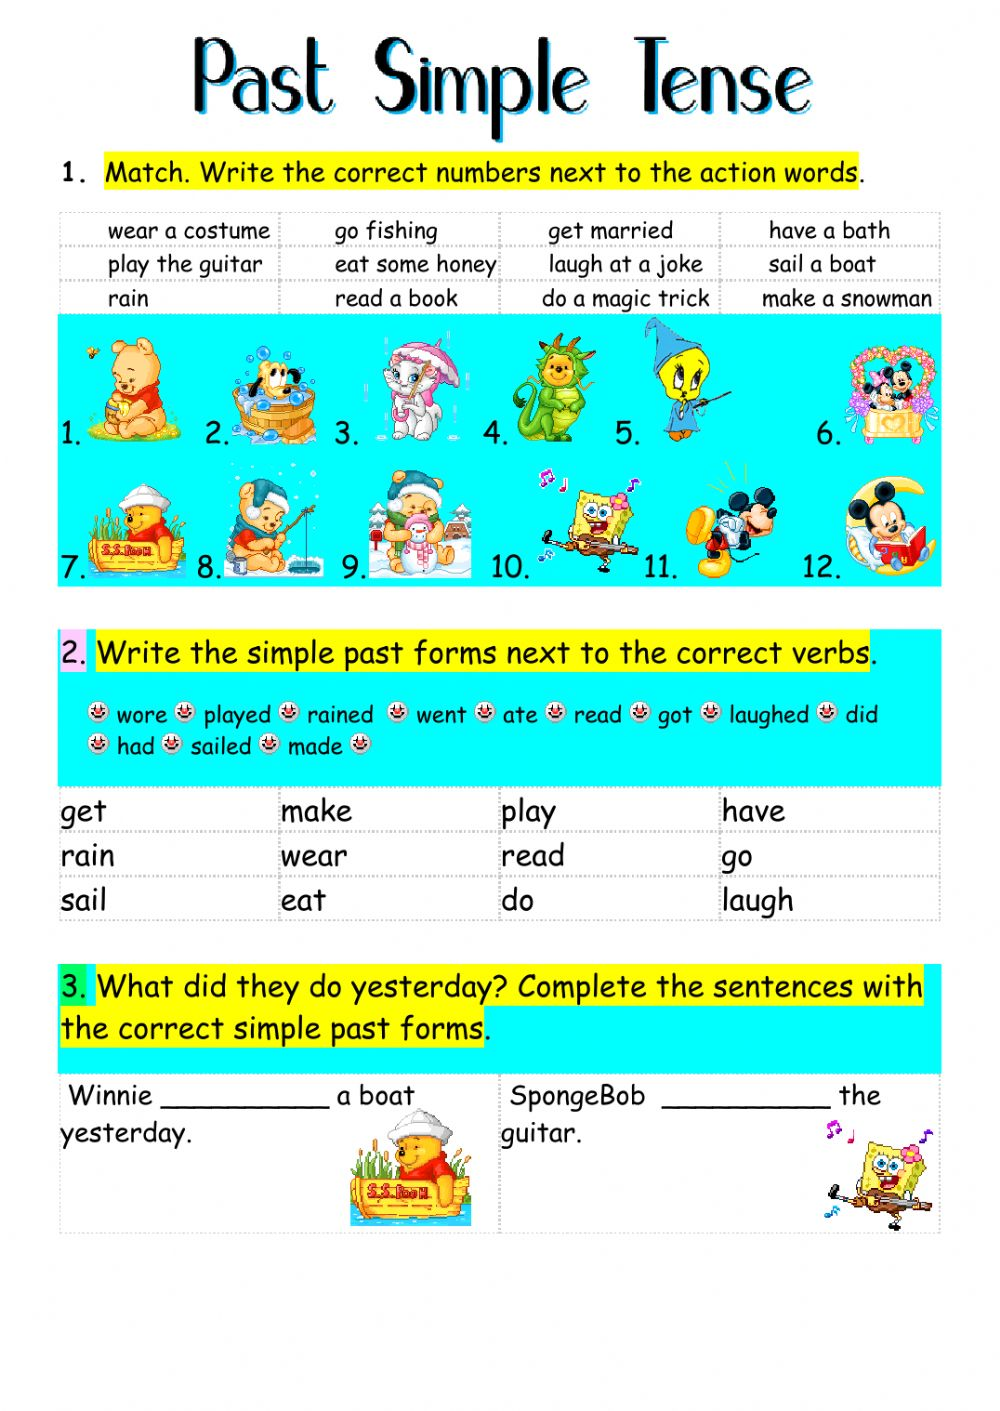 worksheet Simple Past Tense Worksheets past simple tense interactive worksheet